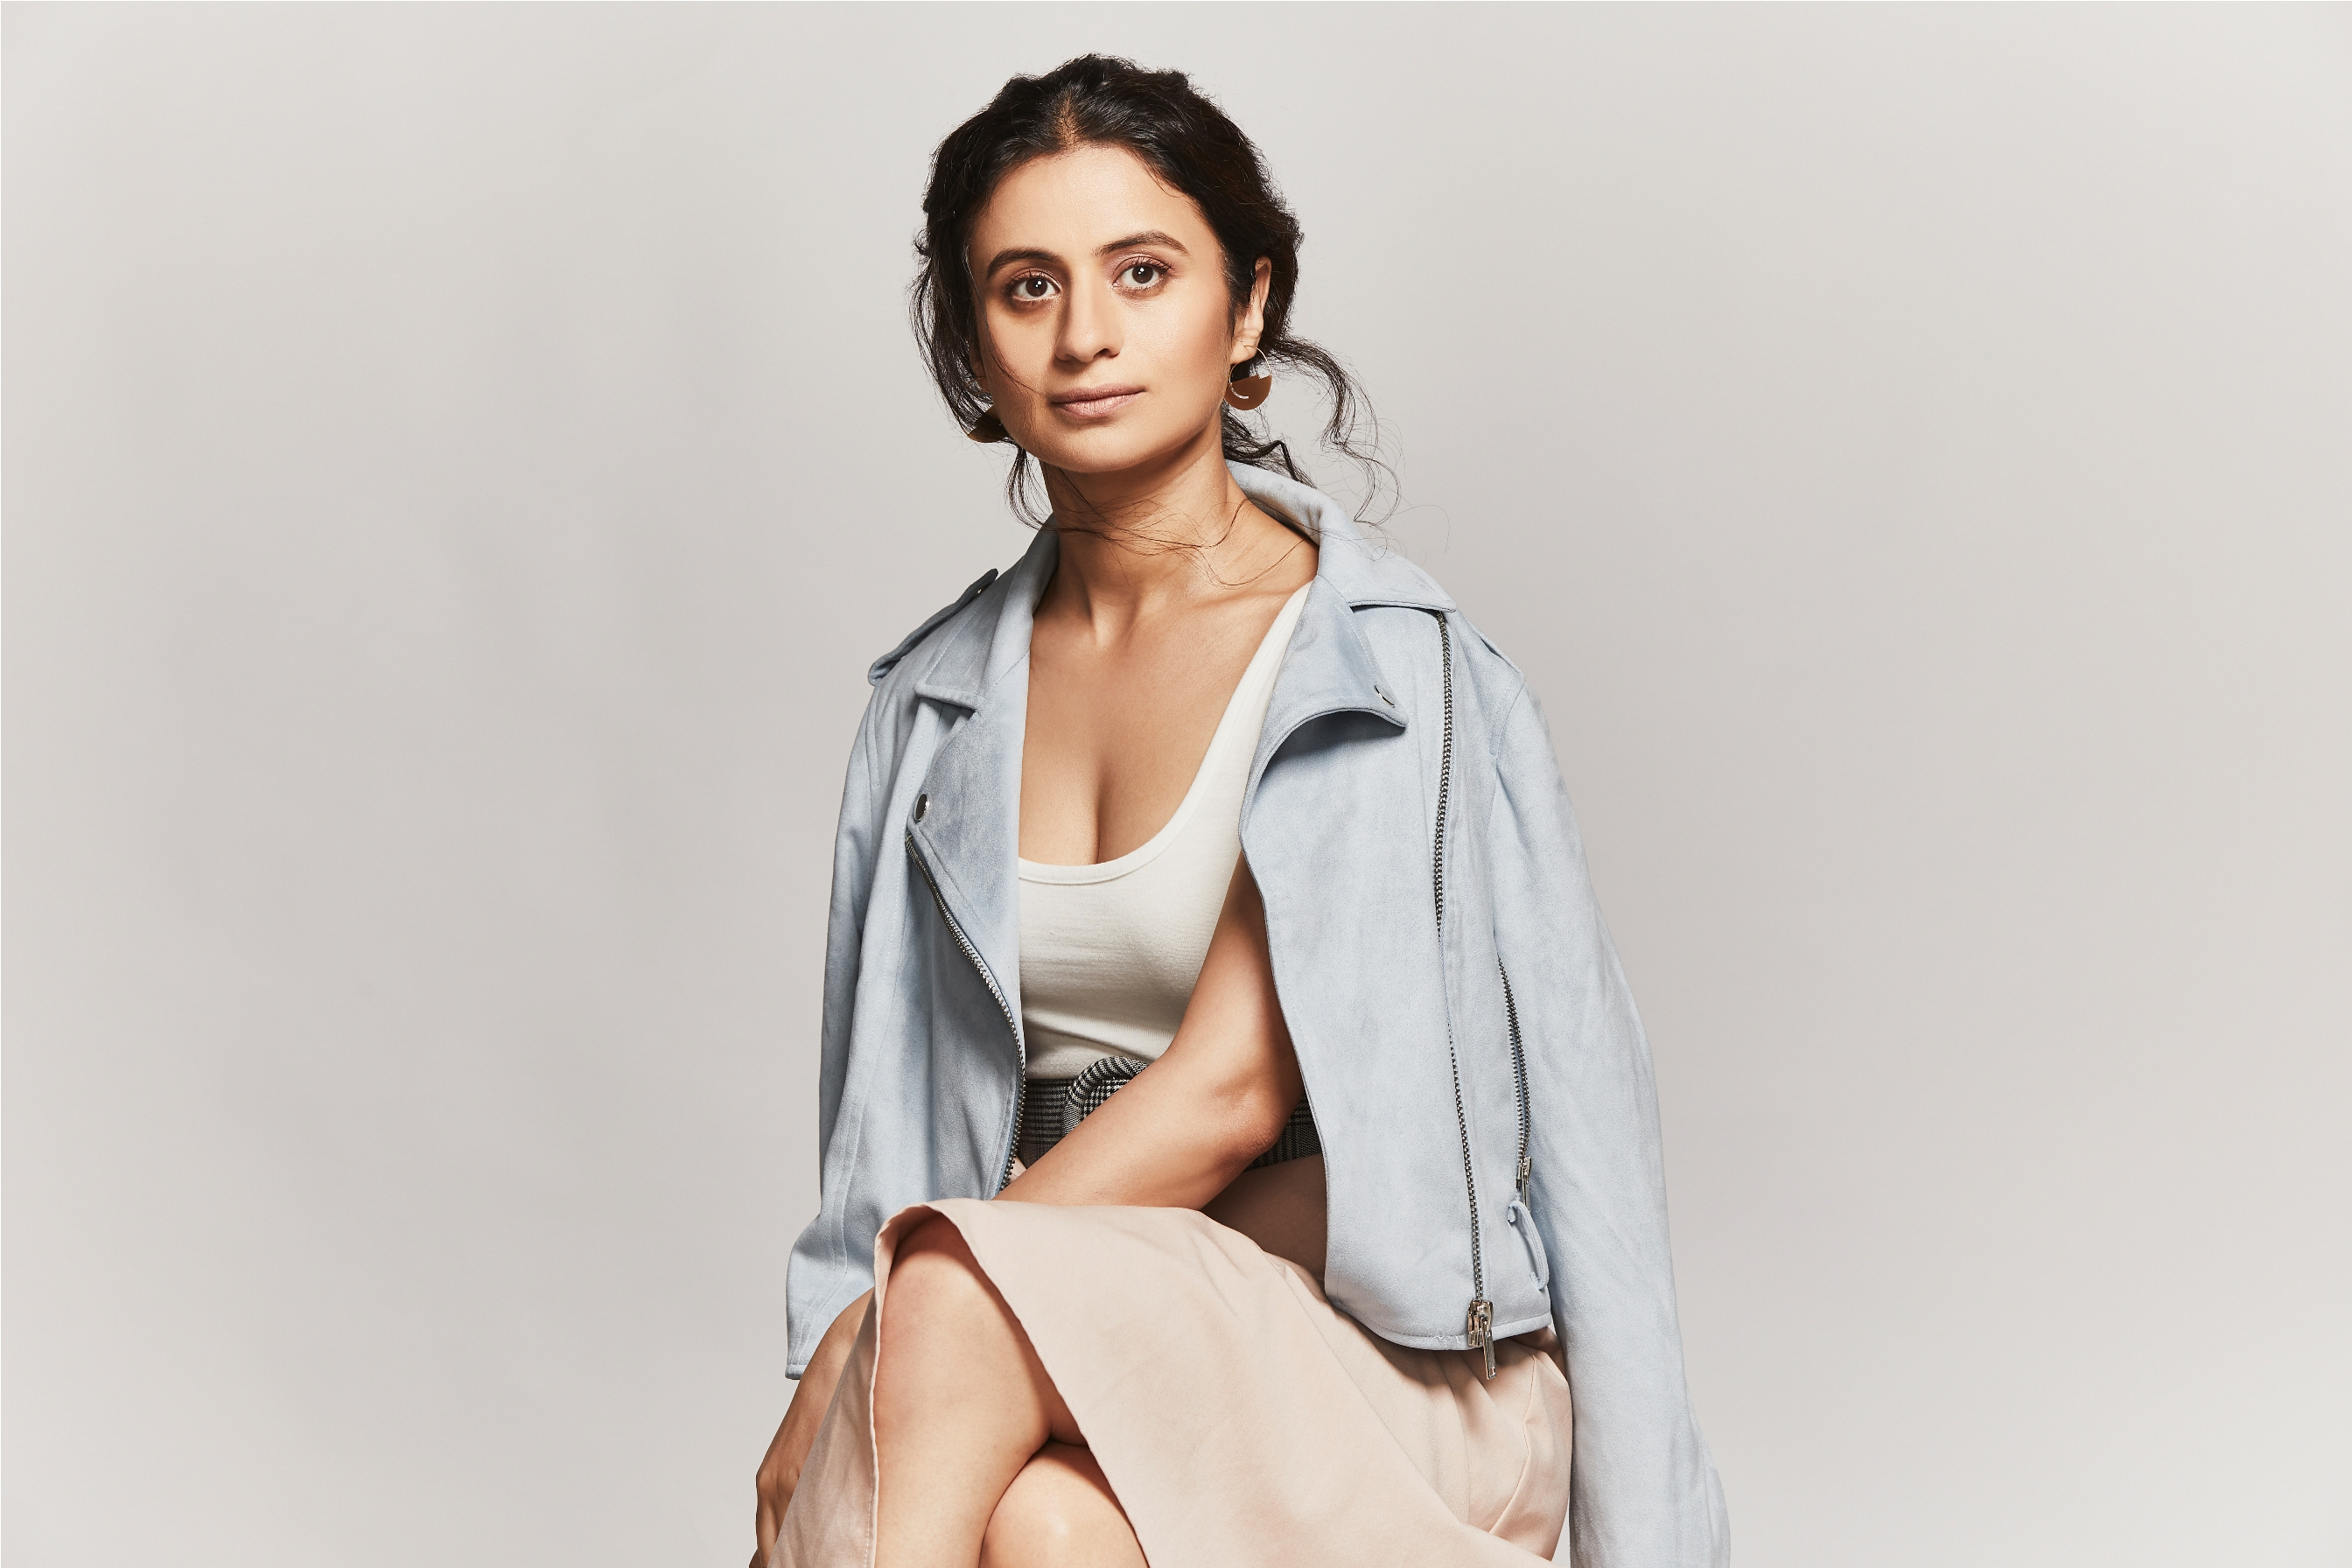 Rasika Dugal who recently played the role of 'Beena' in the Amazon Prime Original show 'Mirzapur'